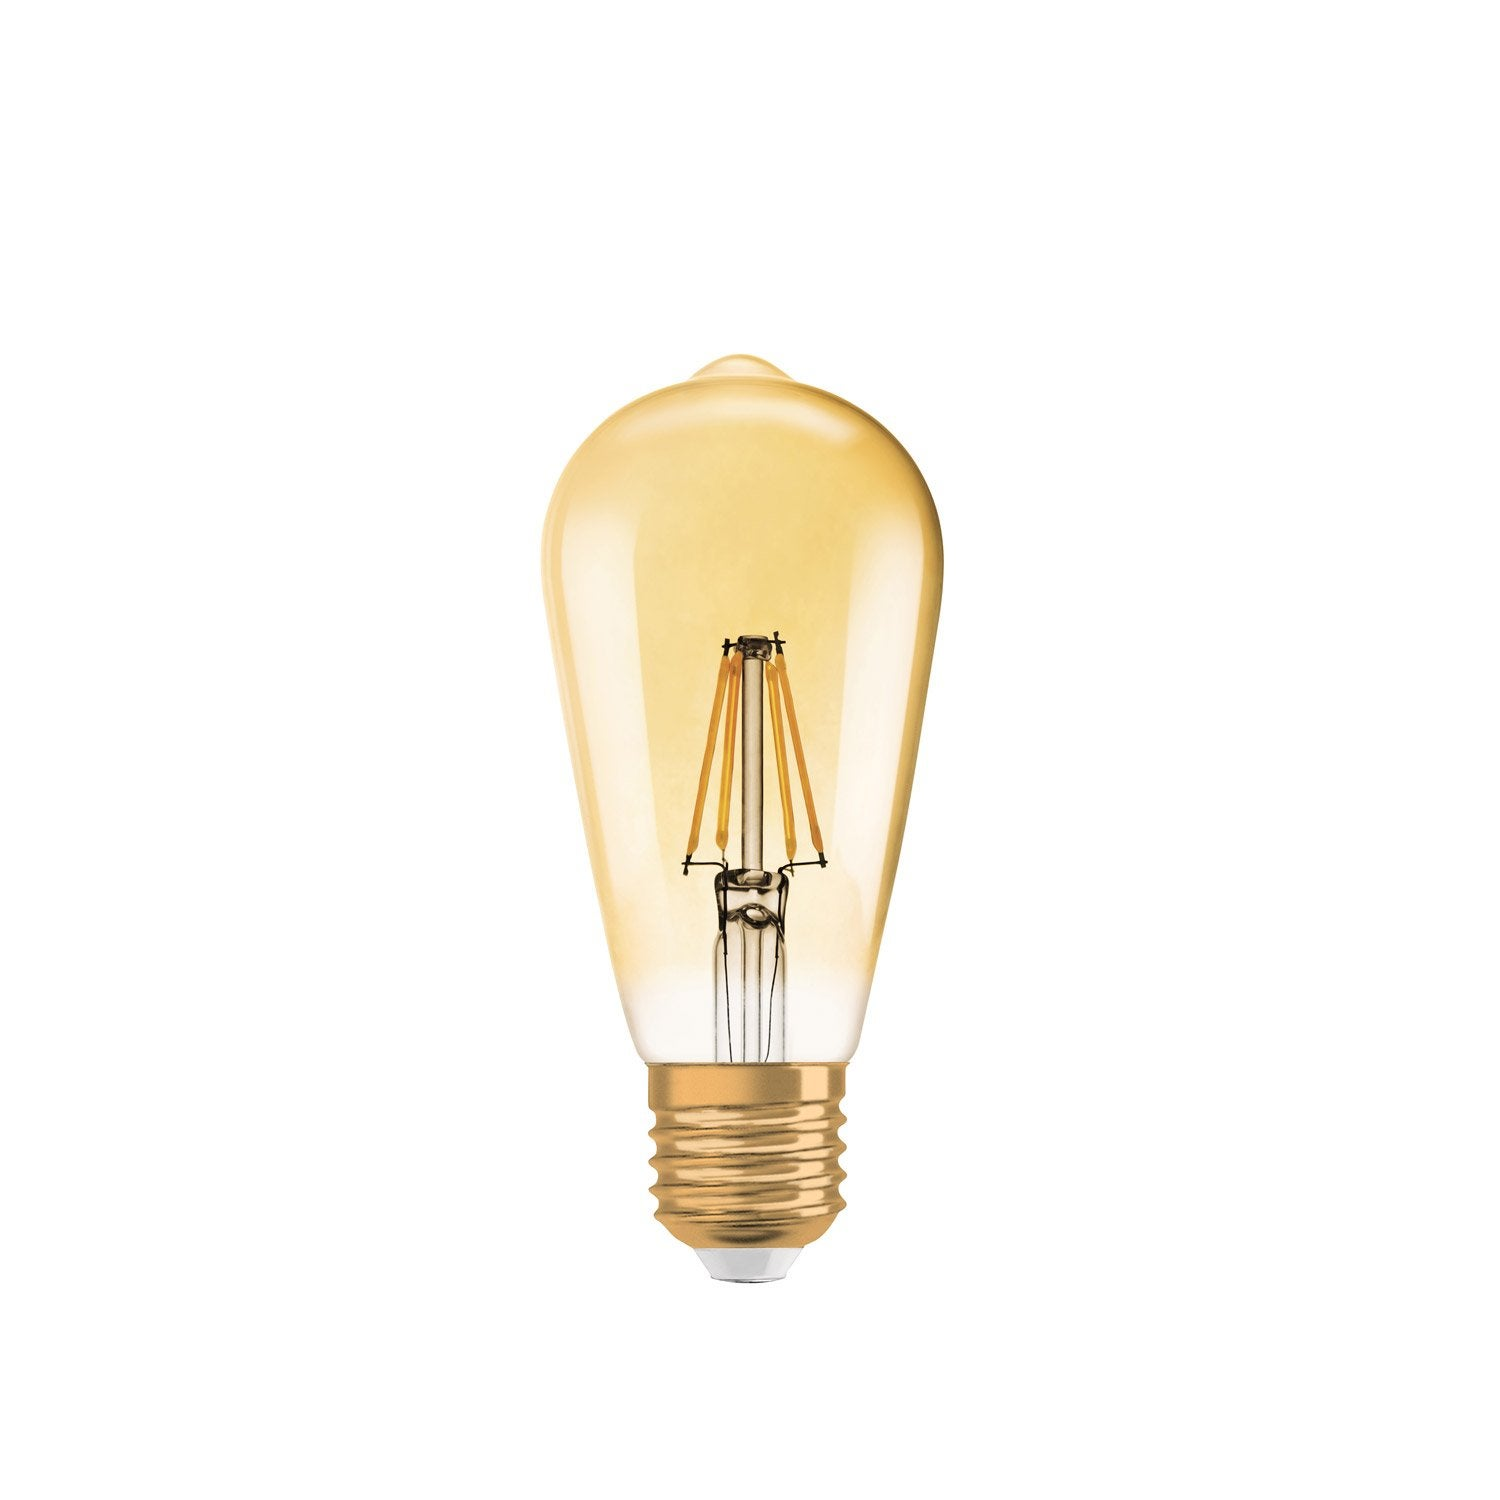 ampoule filament led edison e27 4w 410lm quiv 35w 2400k osram leroy merlin. Black Bedroom Furniture Sets. Home Design Ideas